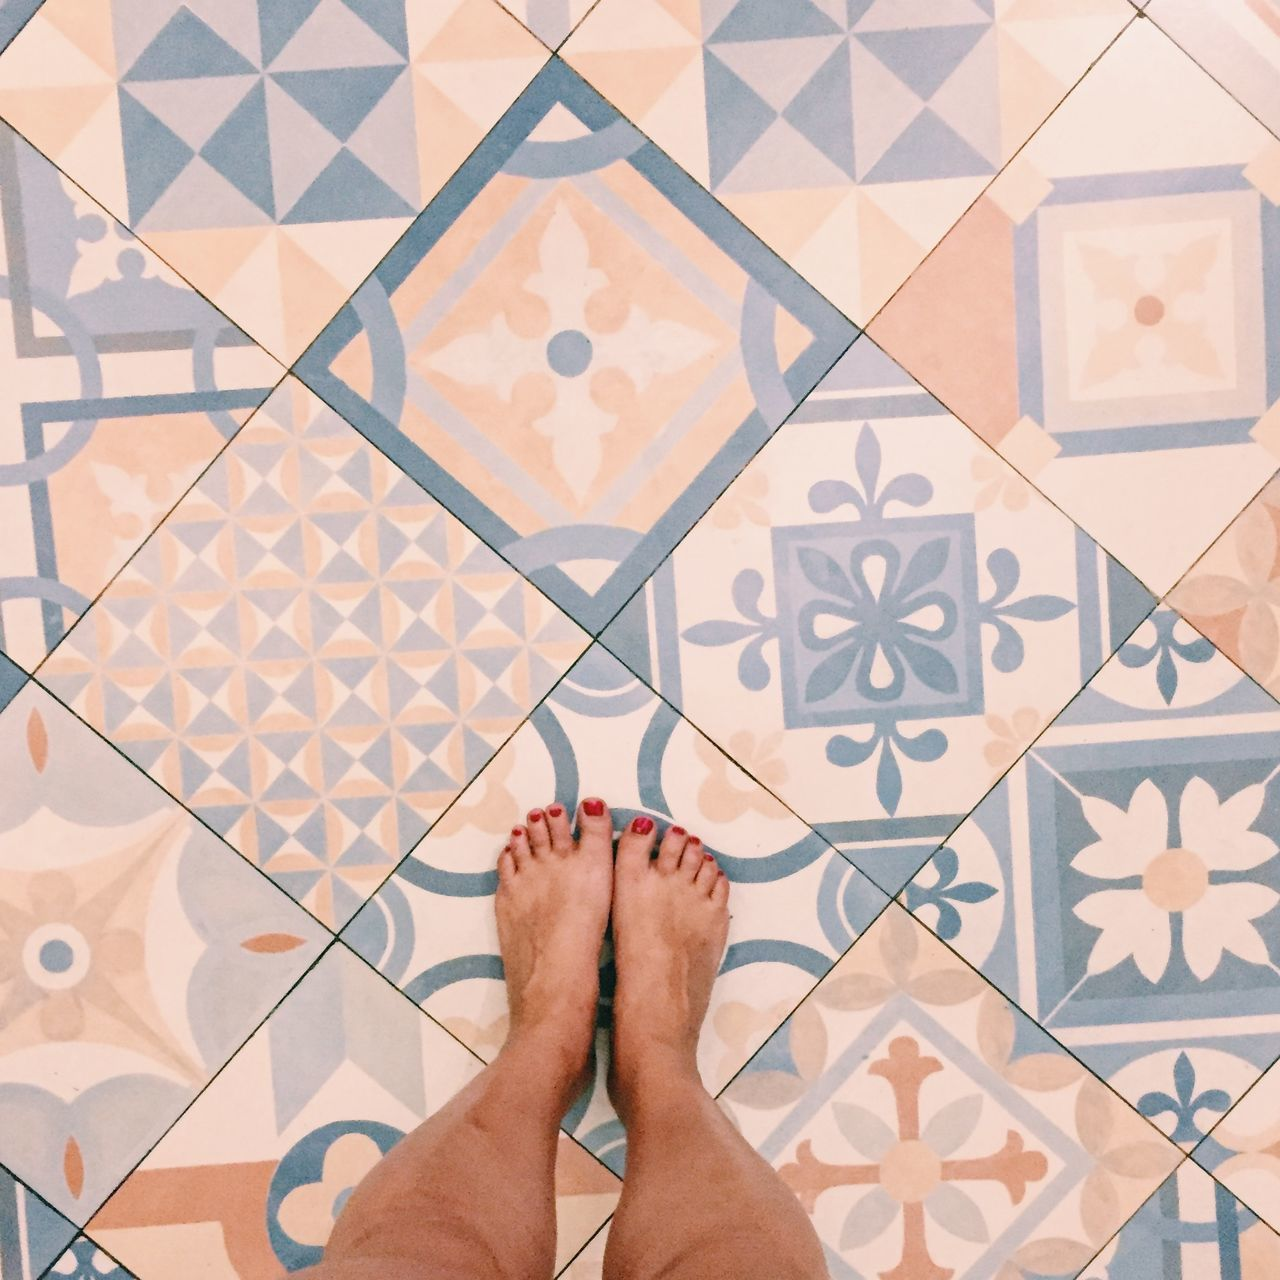 Feet standing on mosaic tiles in Seminyak, Bali, Indonesia Bali Bali, Indonesia Barefoot Close-up Day High Angle View Human Body Part Human Foot Human Leg INDONESIA Indoors  IPhone IPhoneography Lifestyles Low Section One Person Pattern People Personal Perspective Real People South East Asia Square Tile Tiled Floor Women